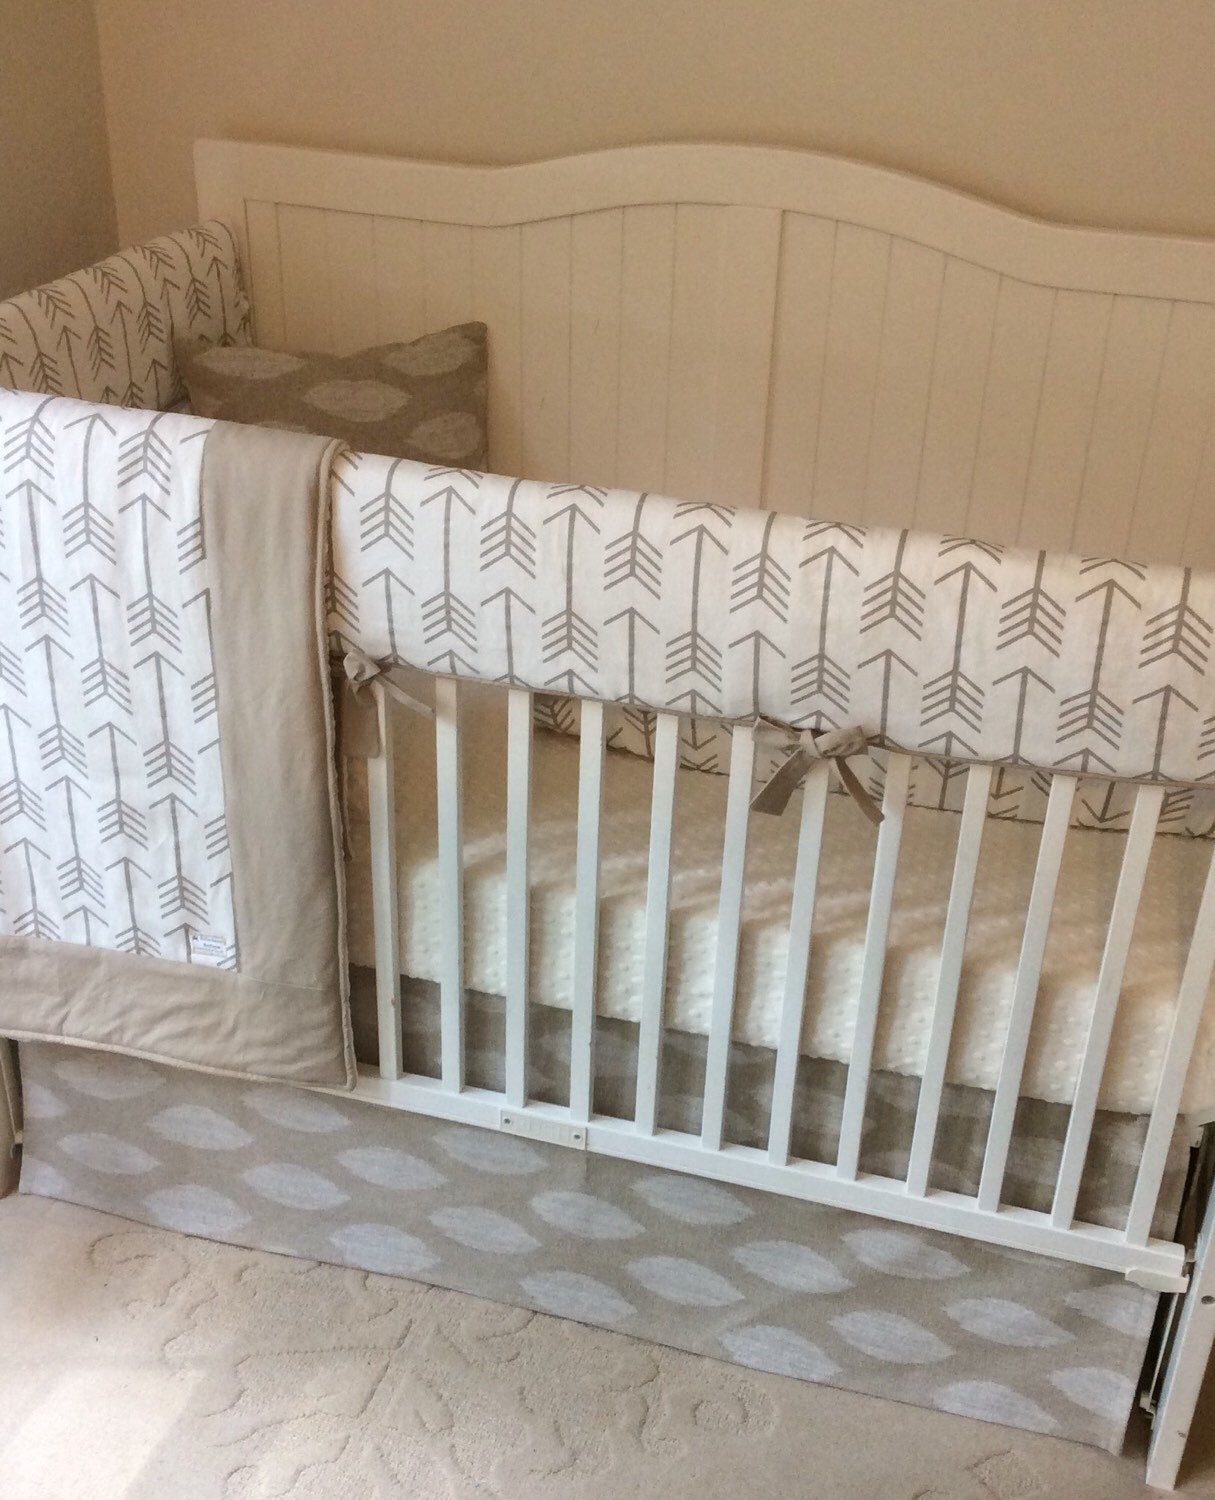 Crib Bedding Set Taupe White Cream Arrows Bumperless By Butterbeansboutique On Etsy Https Www Etsy Com Listi Baby Bed Crib Bedding Boy Girl Crib Bedding Sets